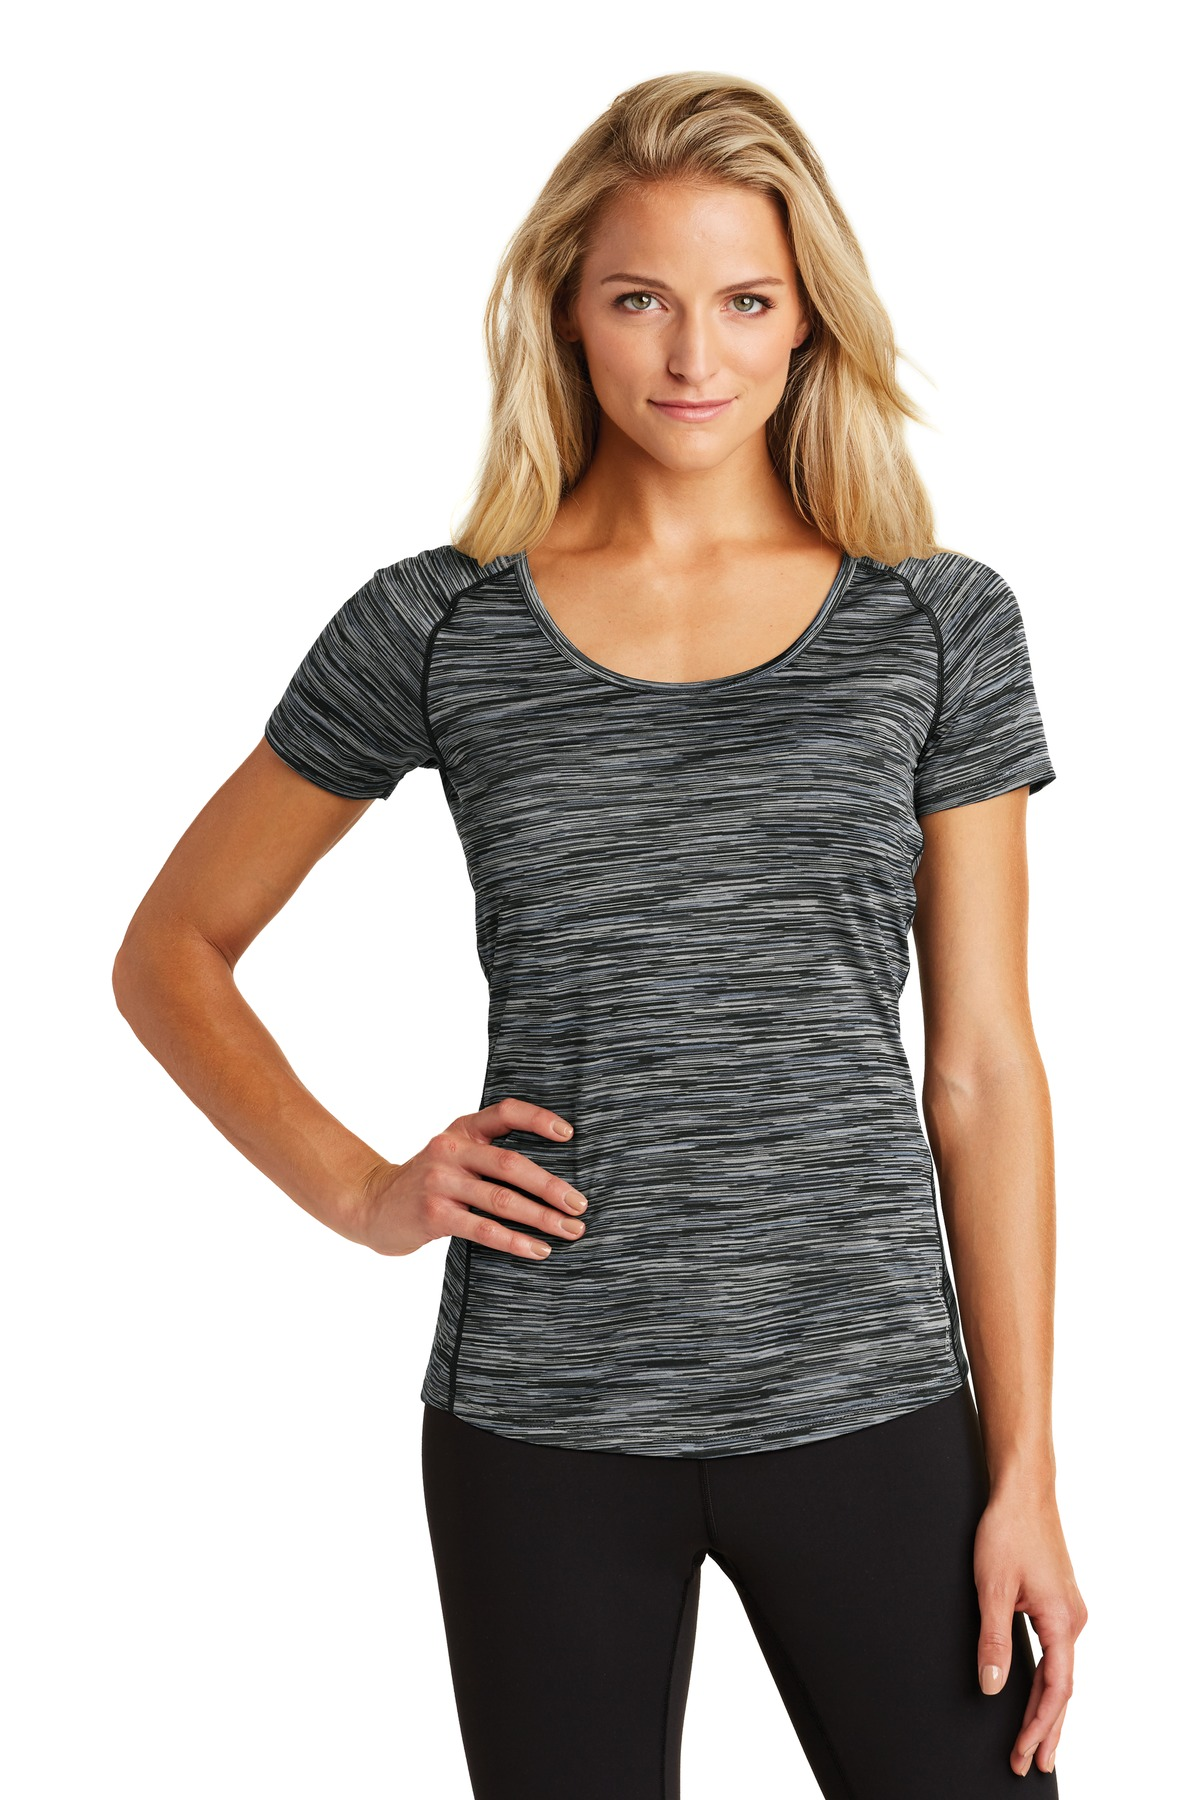 OGIO  ®  ENDURANCE Ladies Verge Scoop Neck. LOE326 - Blacktop Space Dye